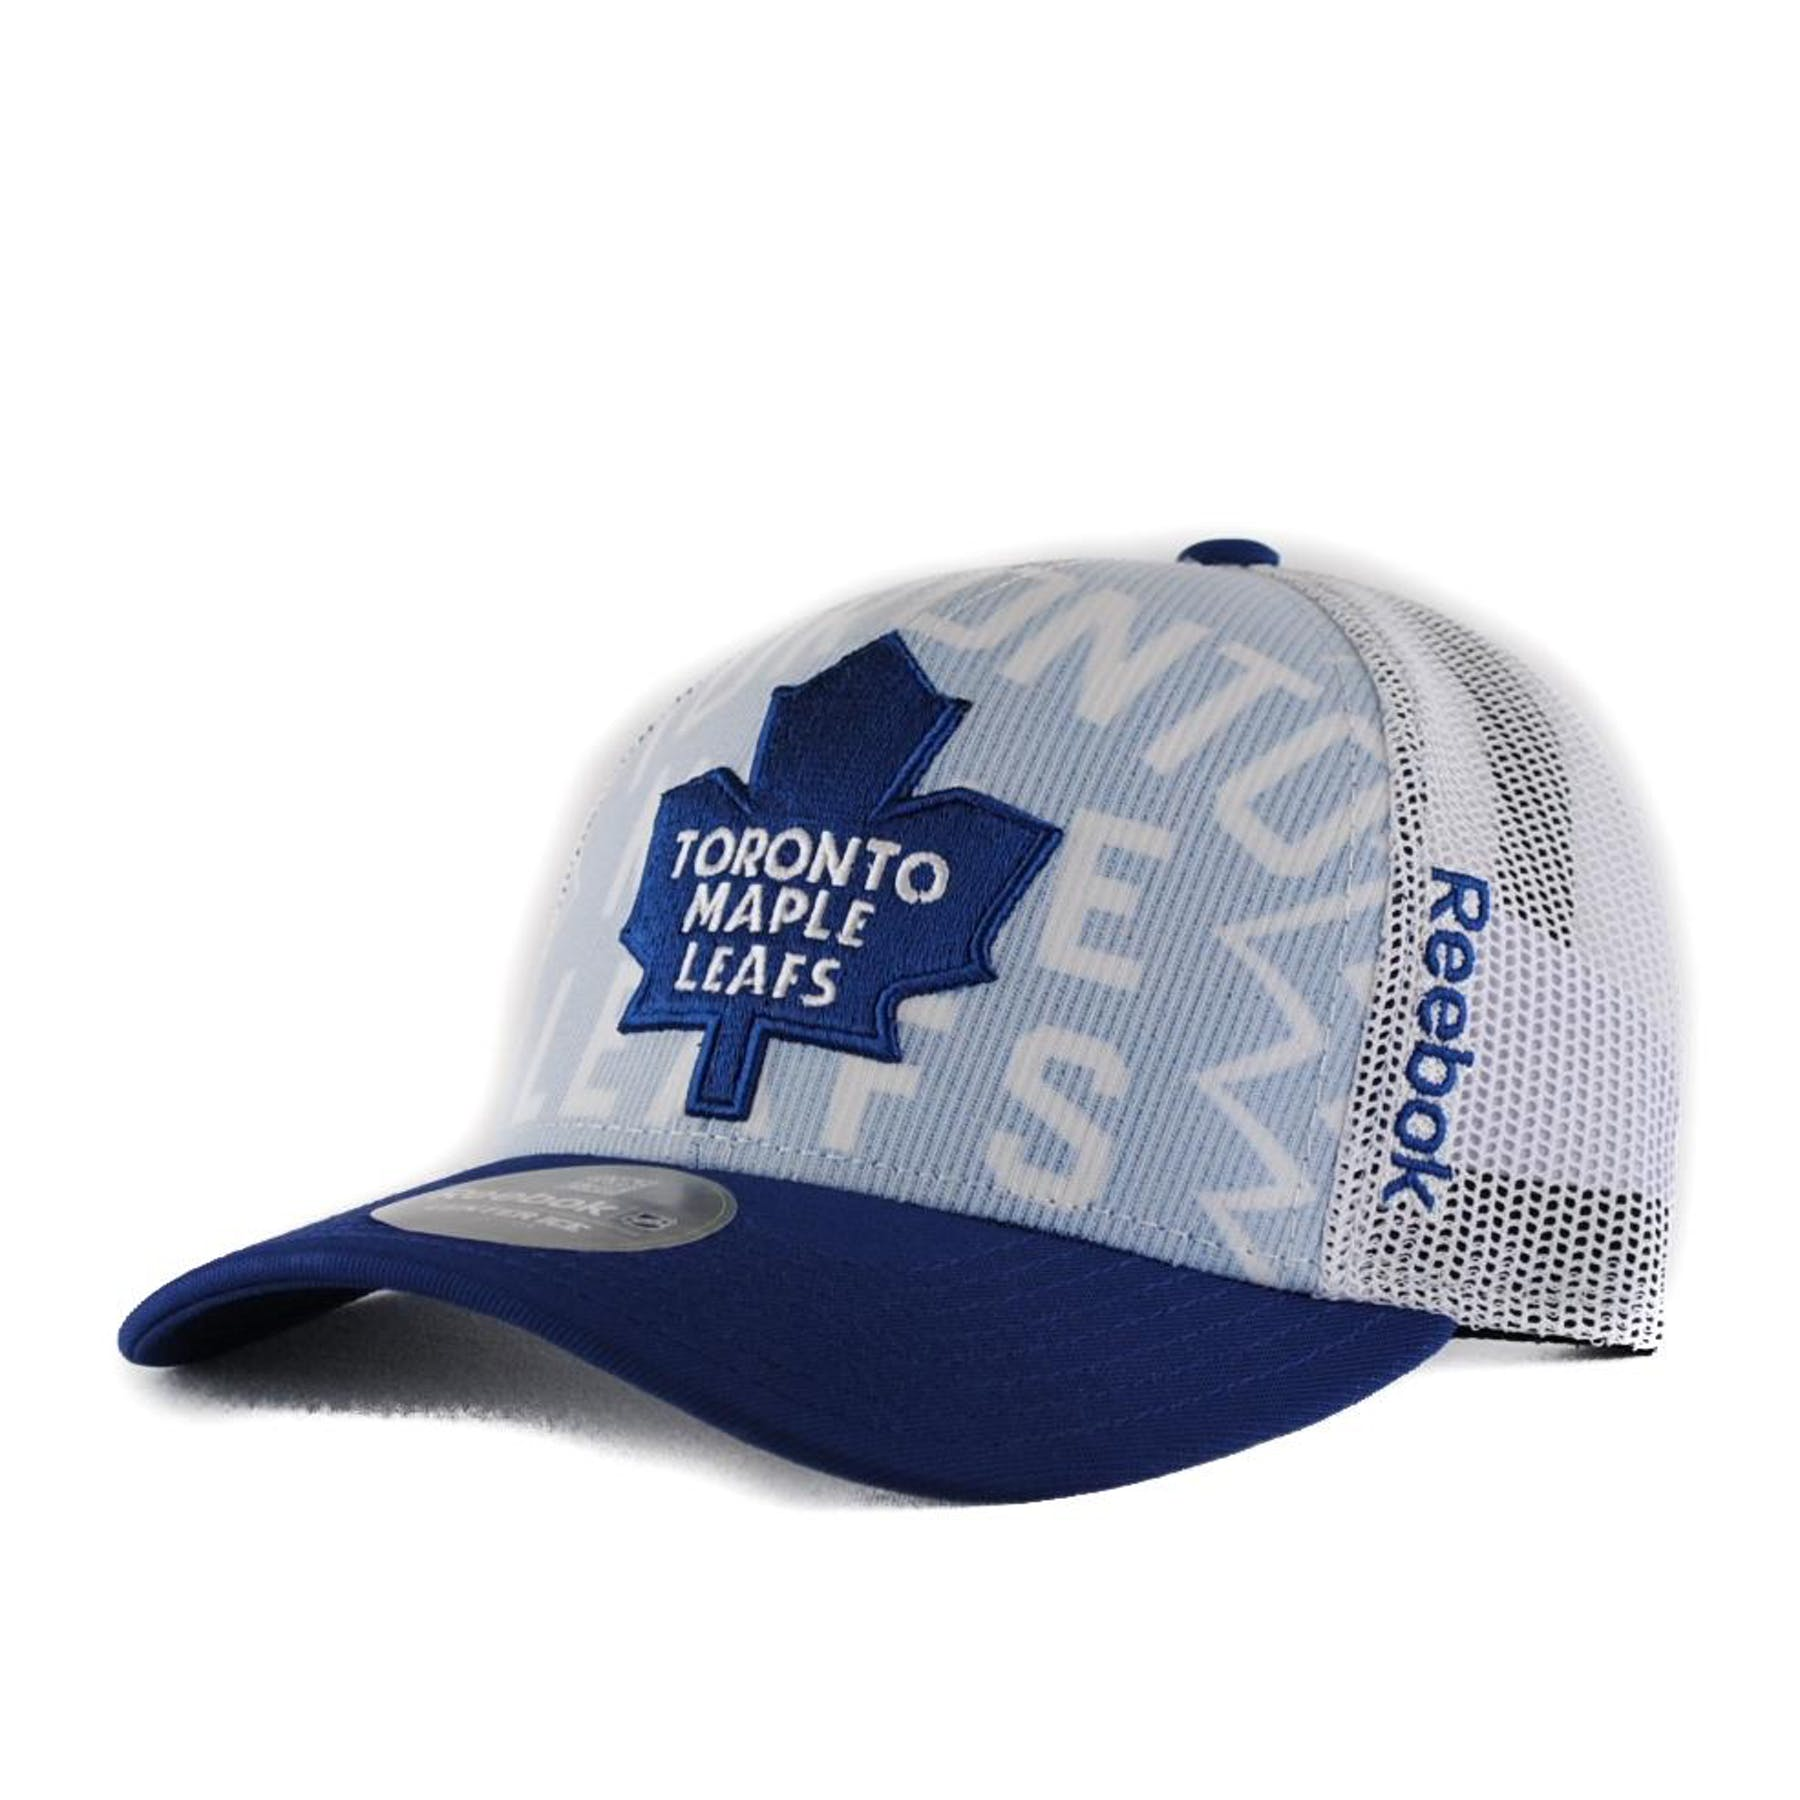 8bacb8c53d9 Toronto Maple Leafs Reebok White Draft Cap Structured Snapback Hat (Adult  One Size)